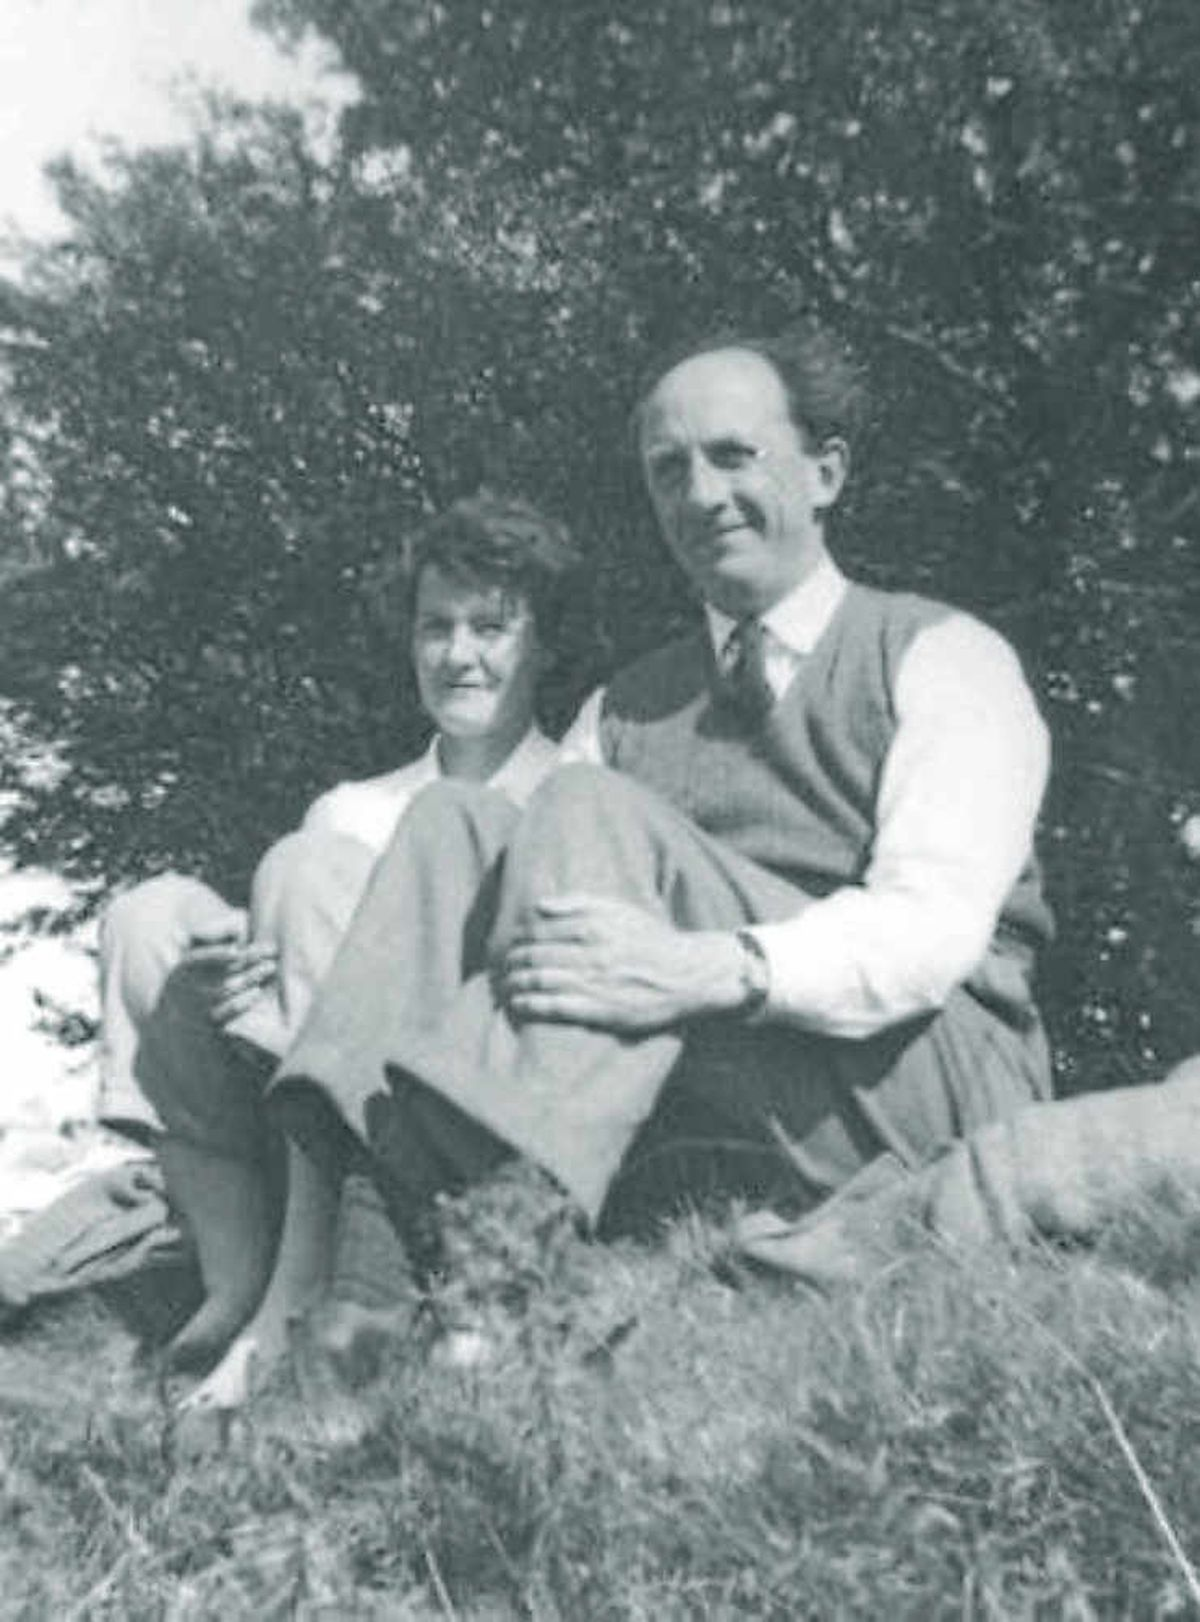 A much earlier photograph of Thea and John